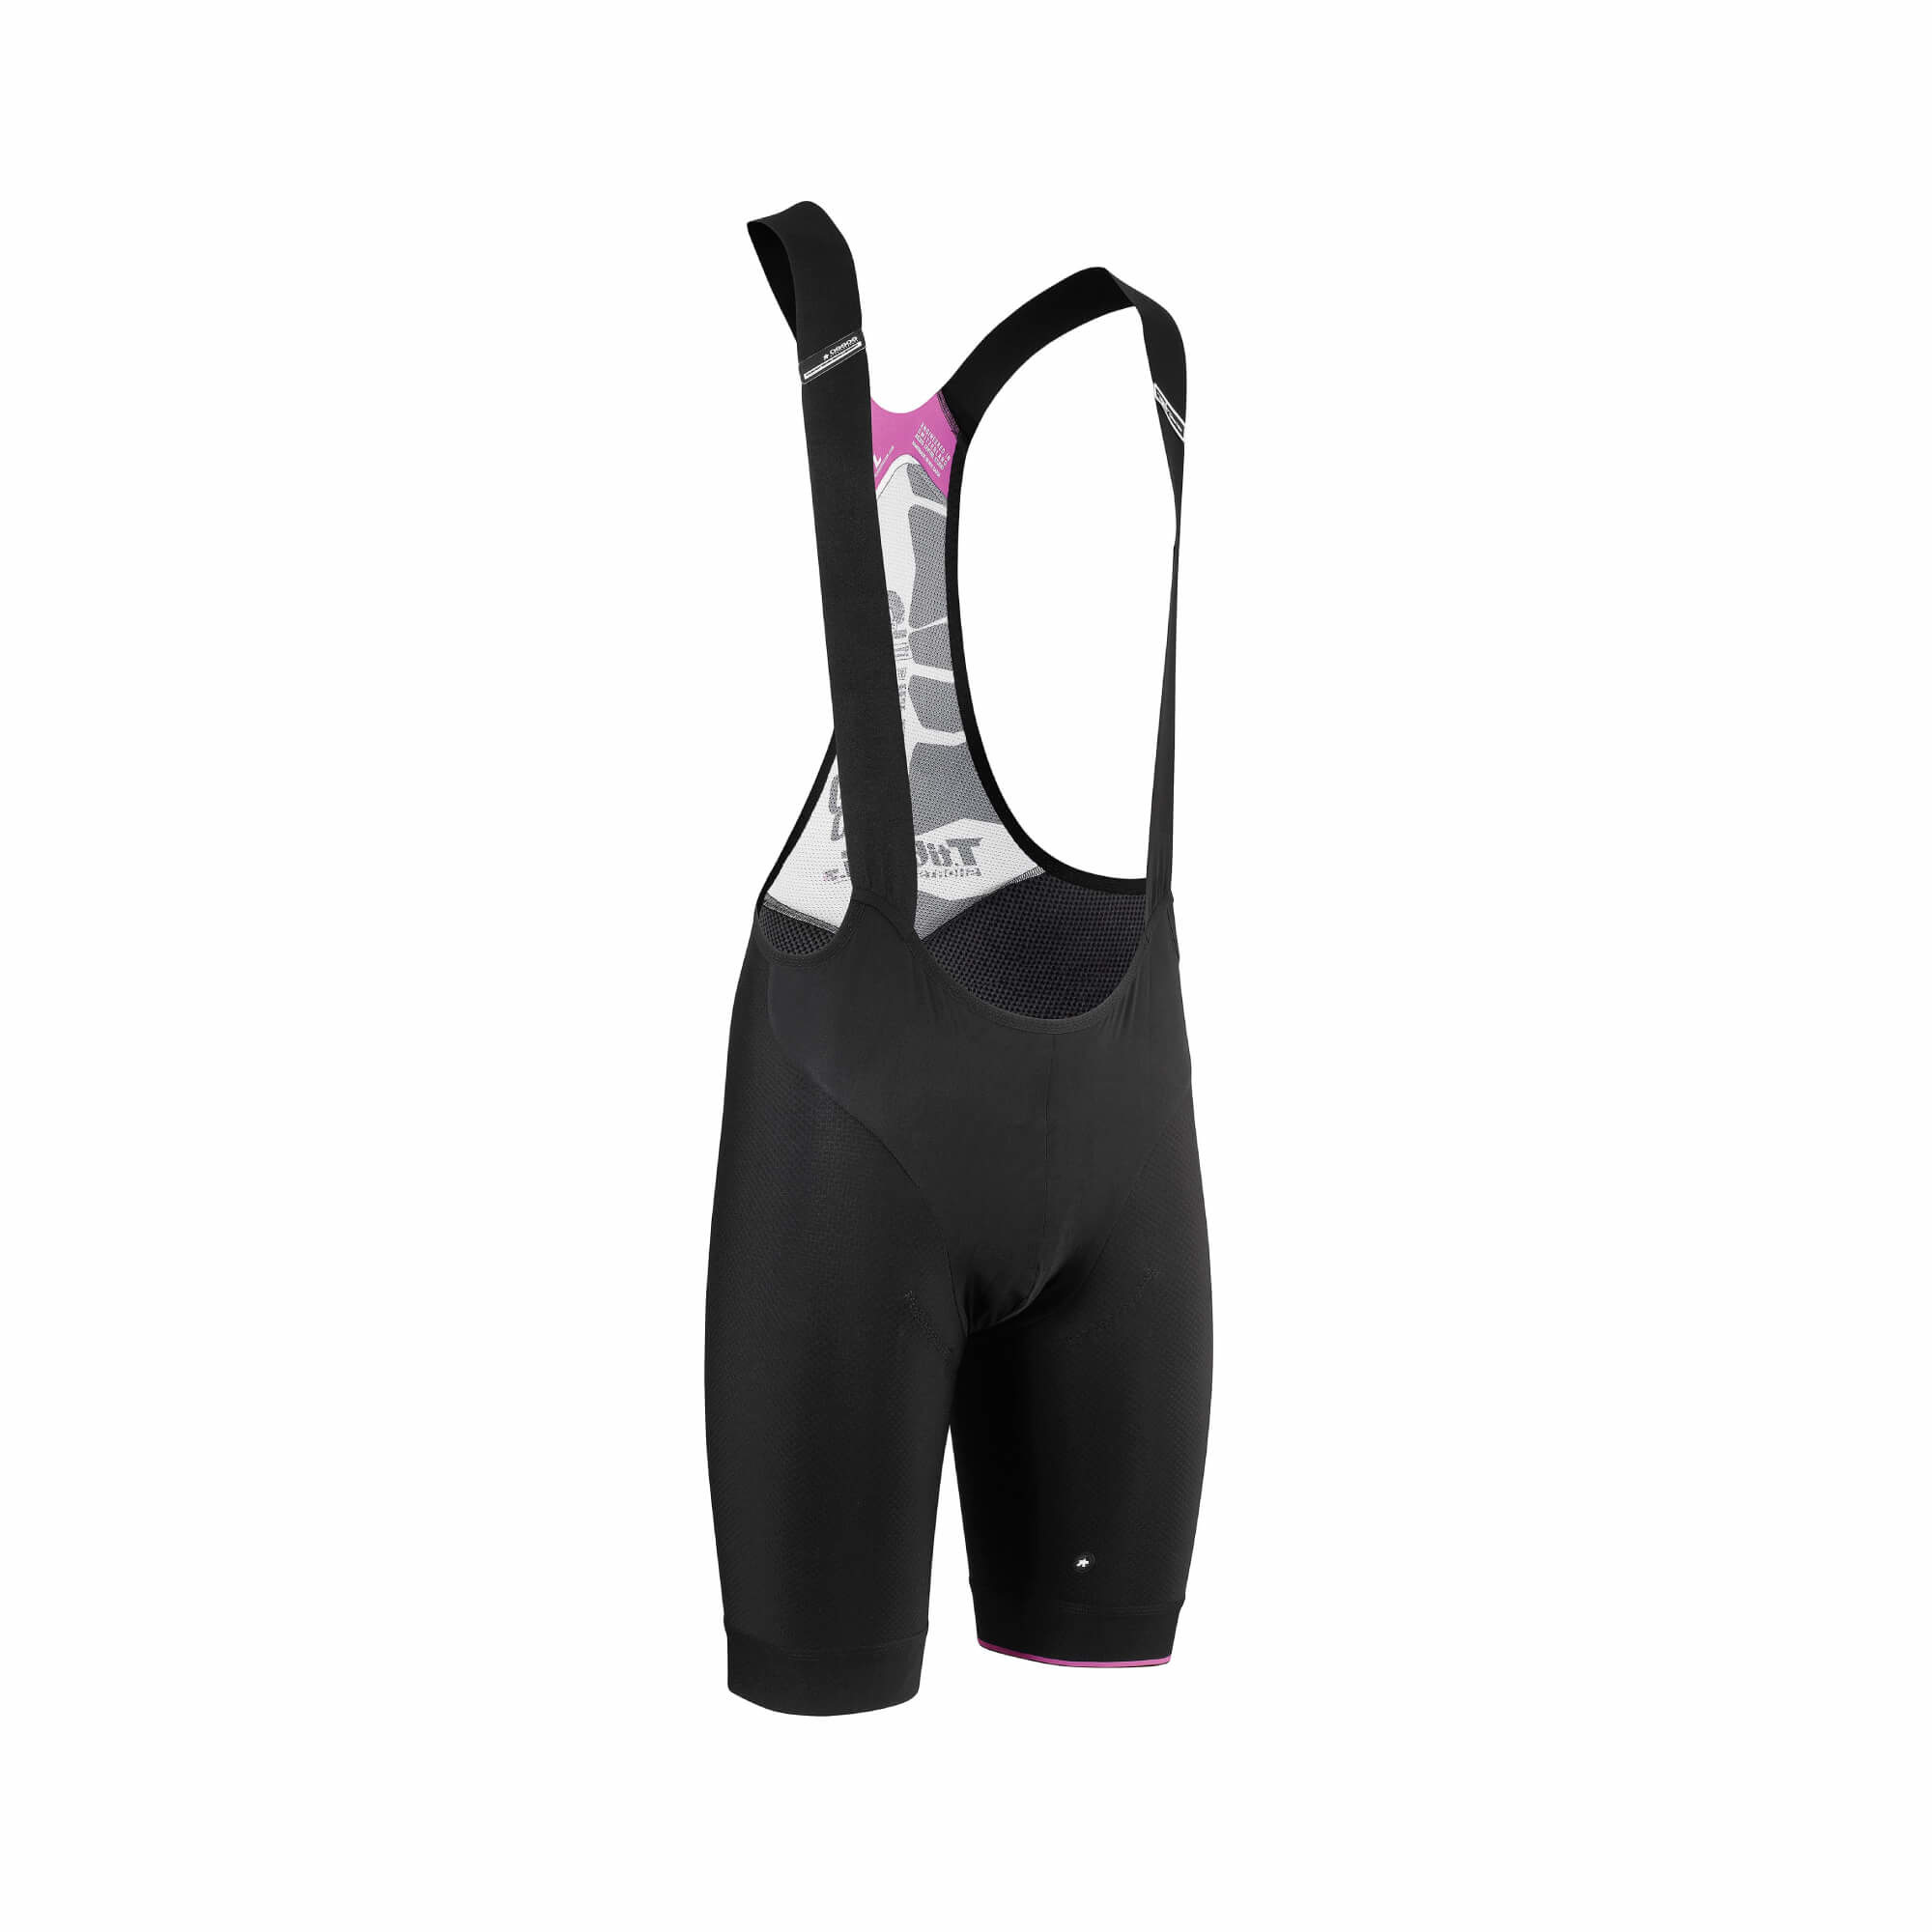 T.Tiburu S7 Black Volkanga Bib Shorts Small-2